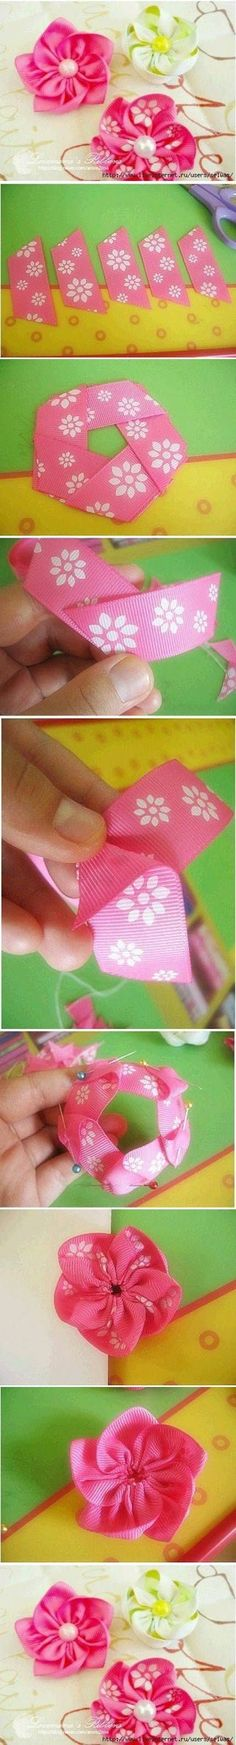 DIY Tape Flowers DIY Projects